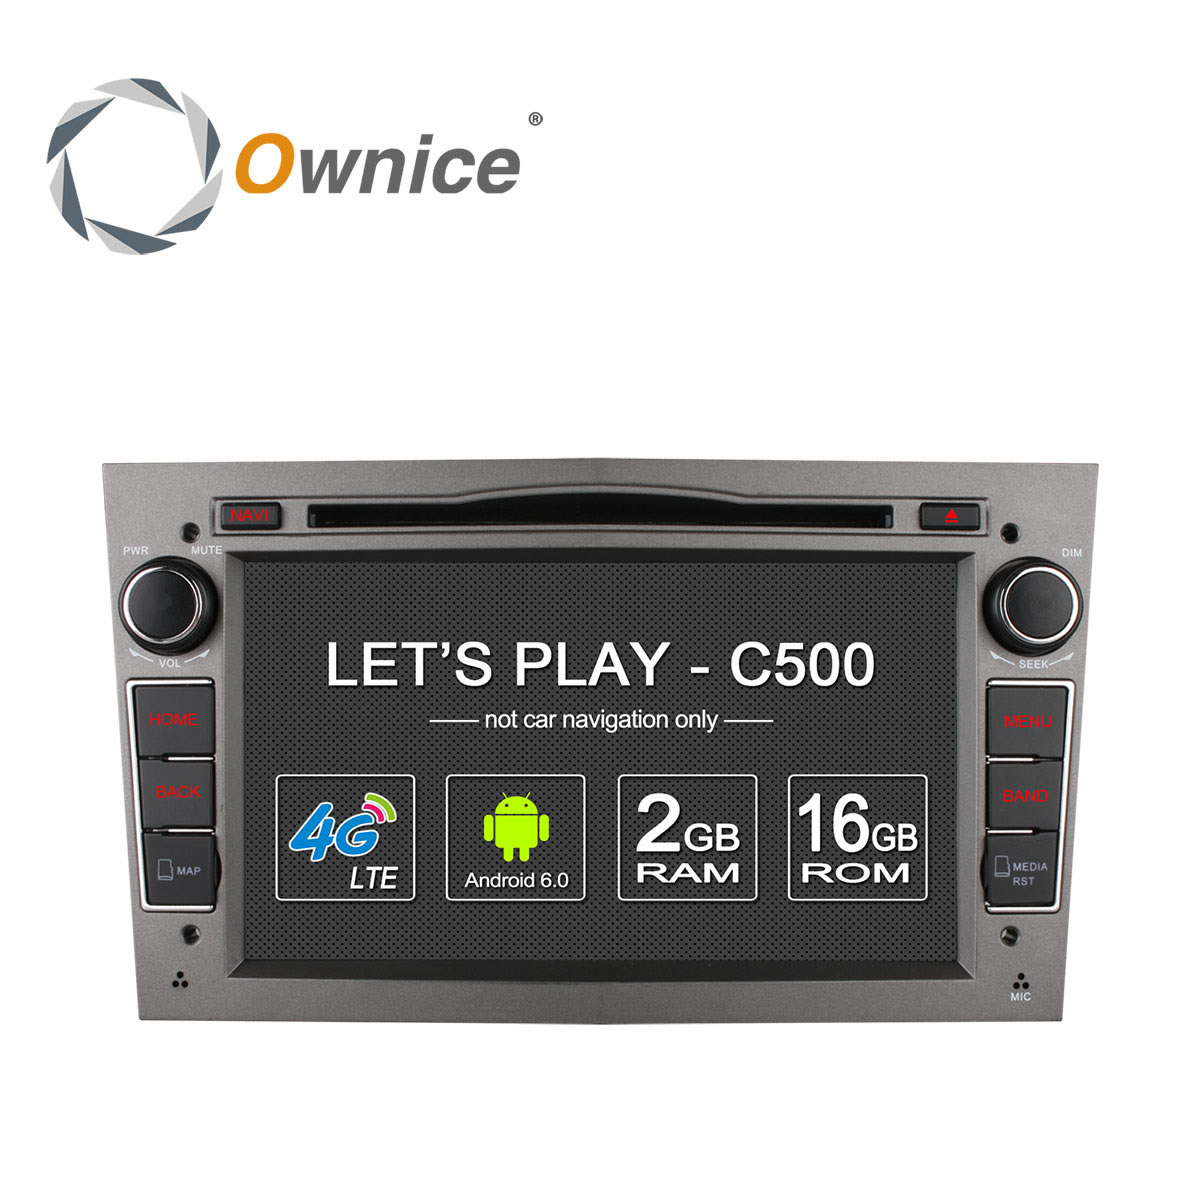 ownice c500 android 6 0 4 core 2g ram car dvd gps 2 din for vauxhall opel astra h g j vectra. Black Bedroom Furniture Sets. Home Design Ideas